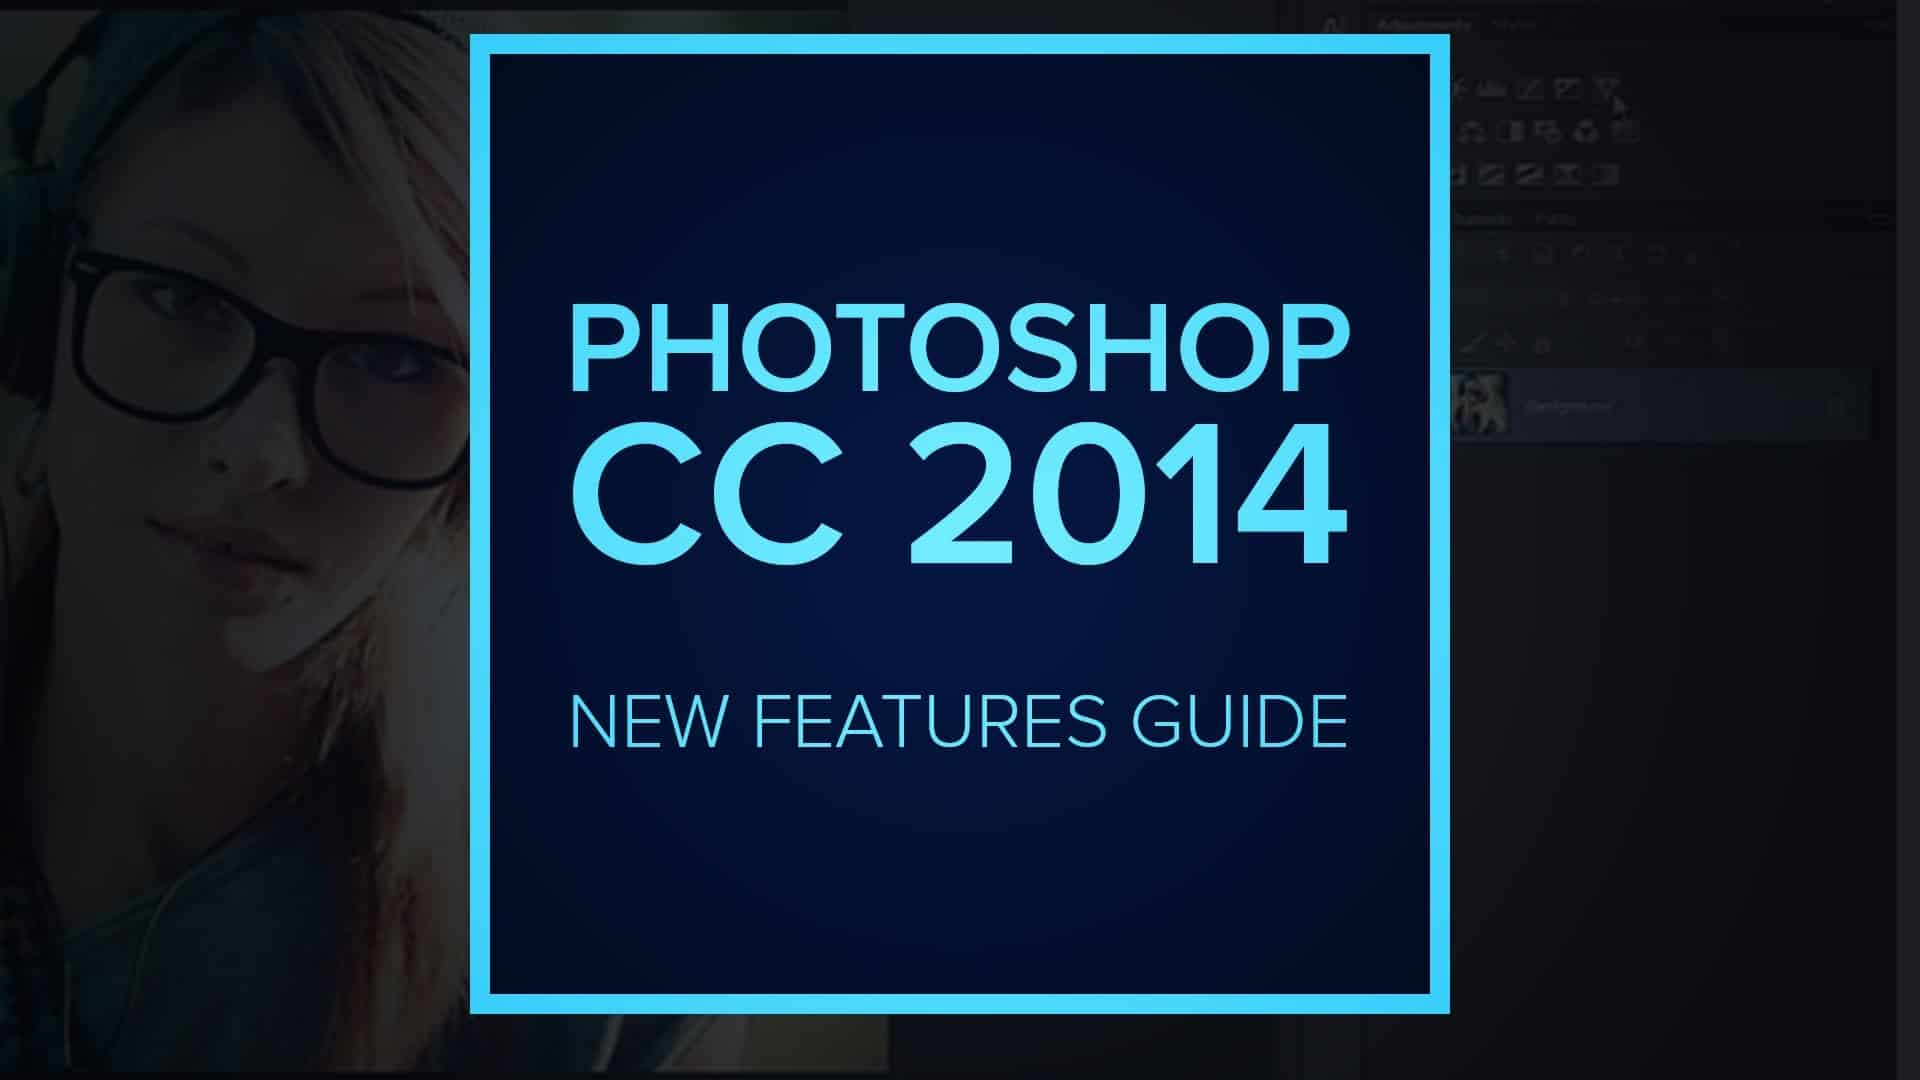 What's New in Photoshop CC 2014? New Features Guide